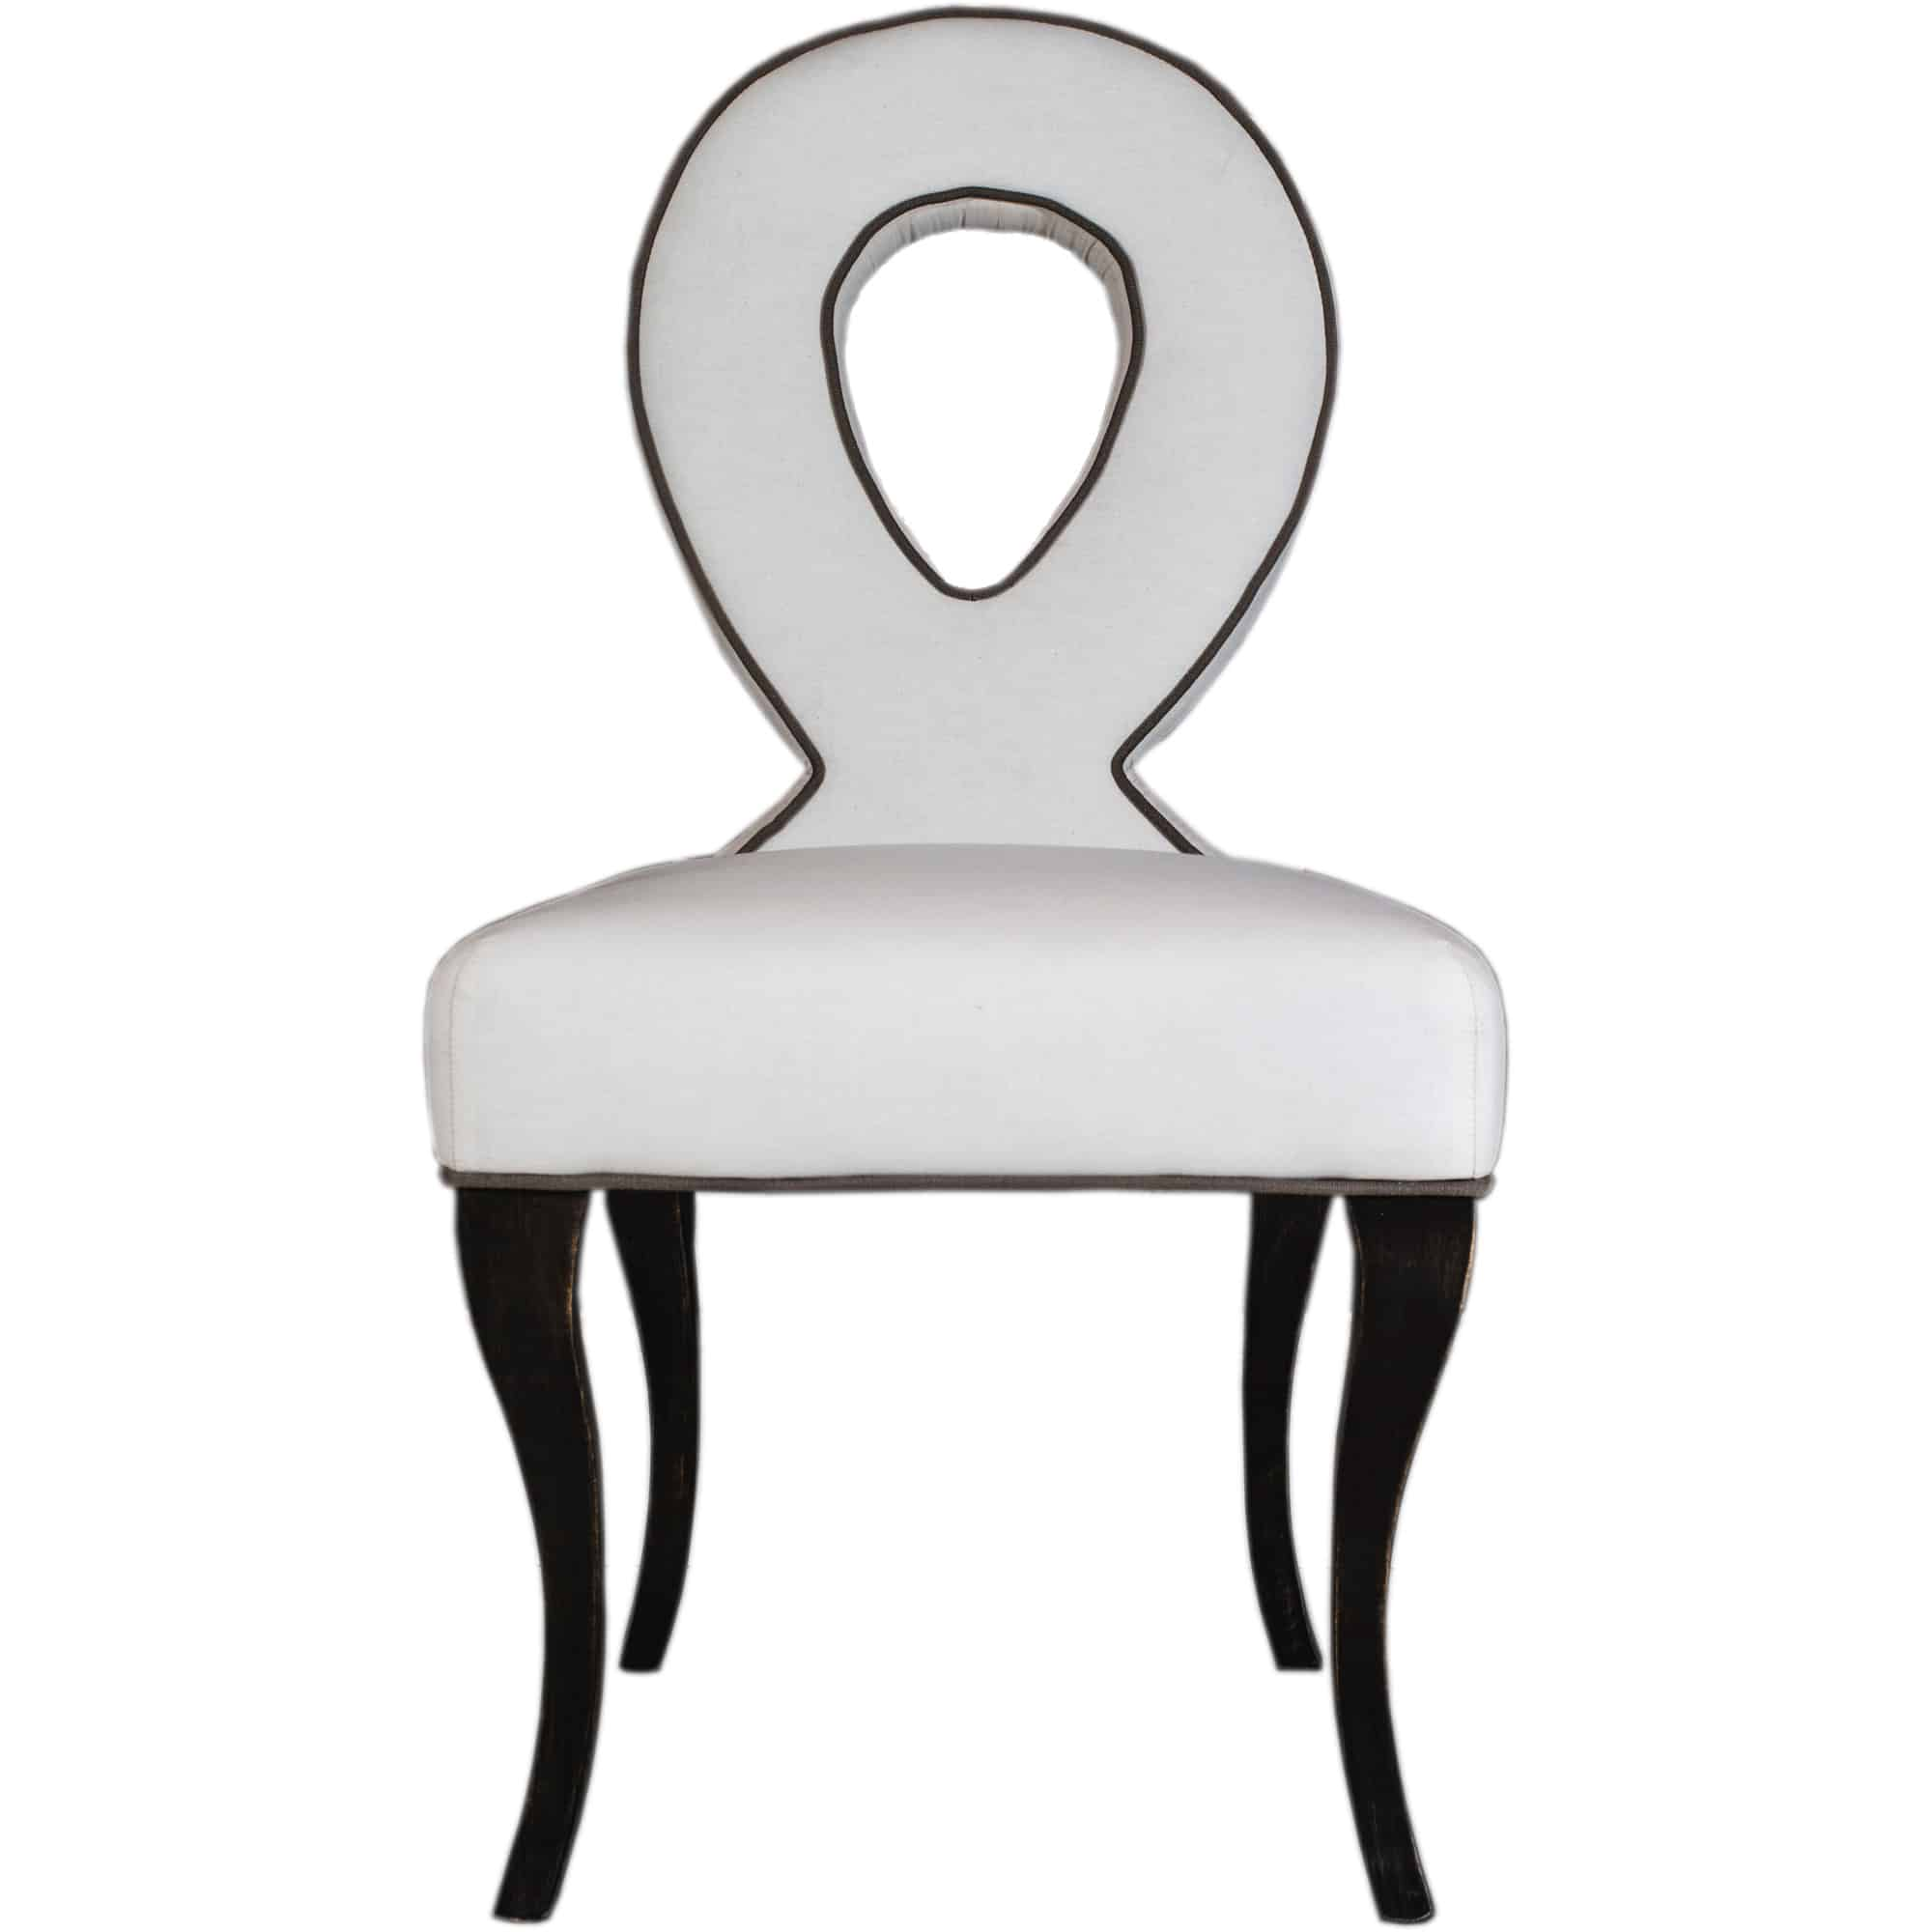 infinity dining chair front view white background